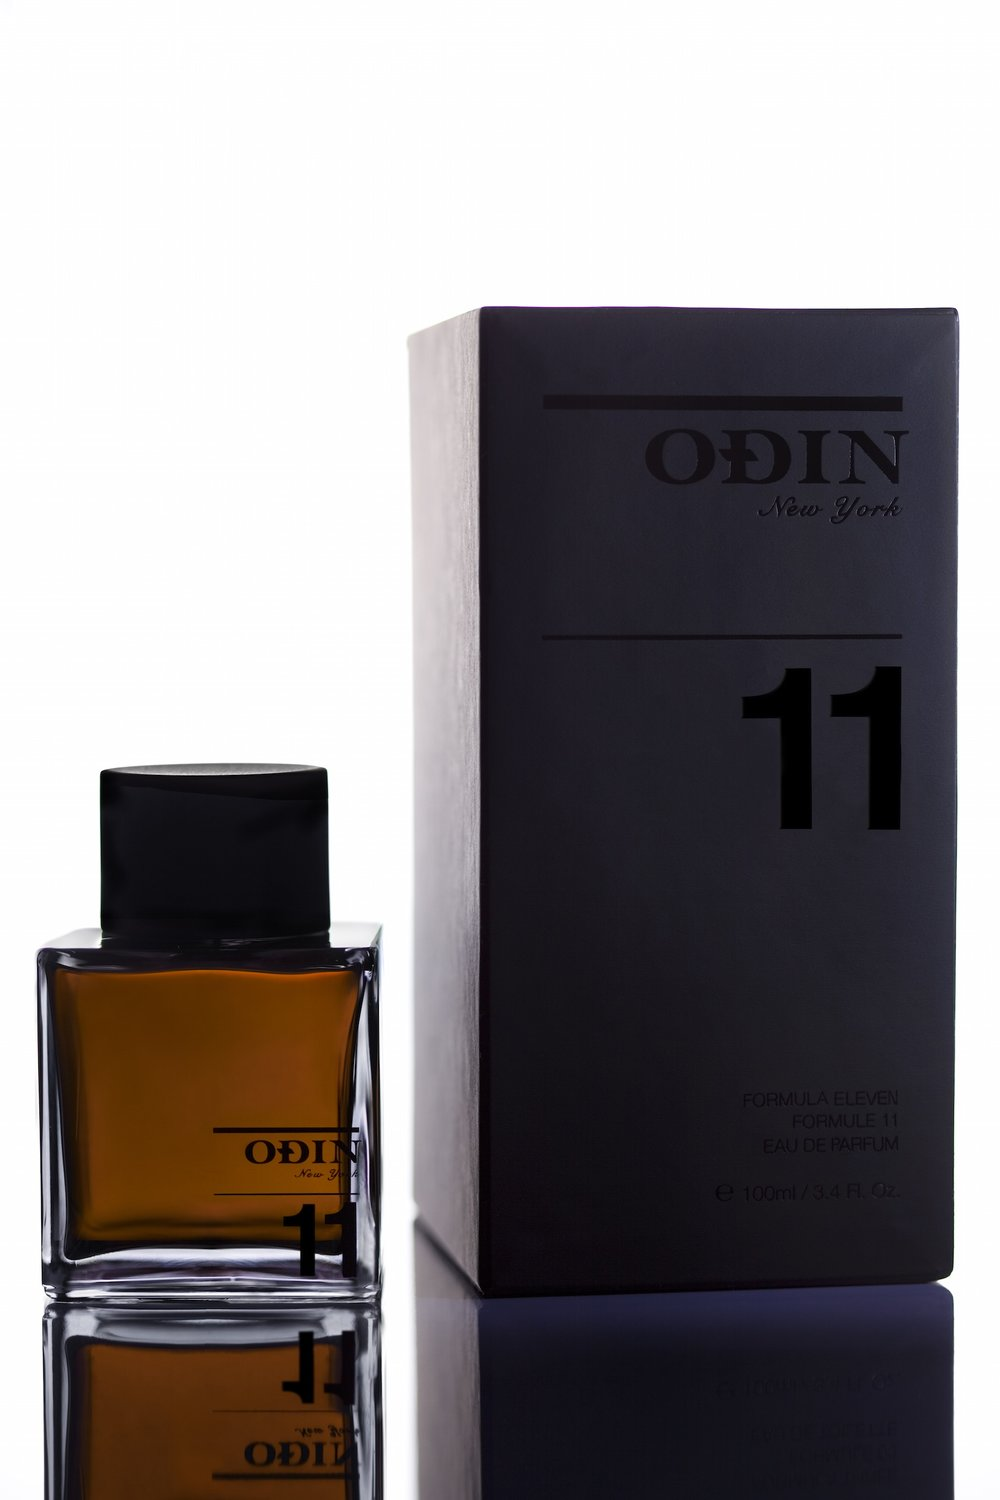 ODIN New York's No. 11 Semma